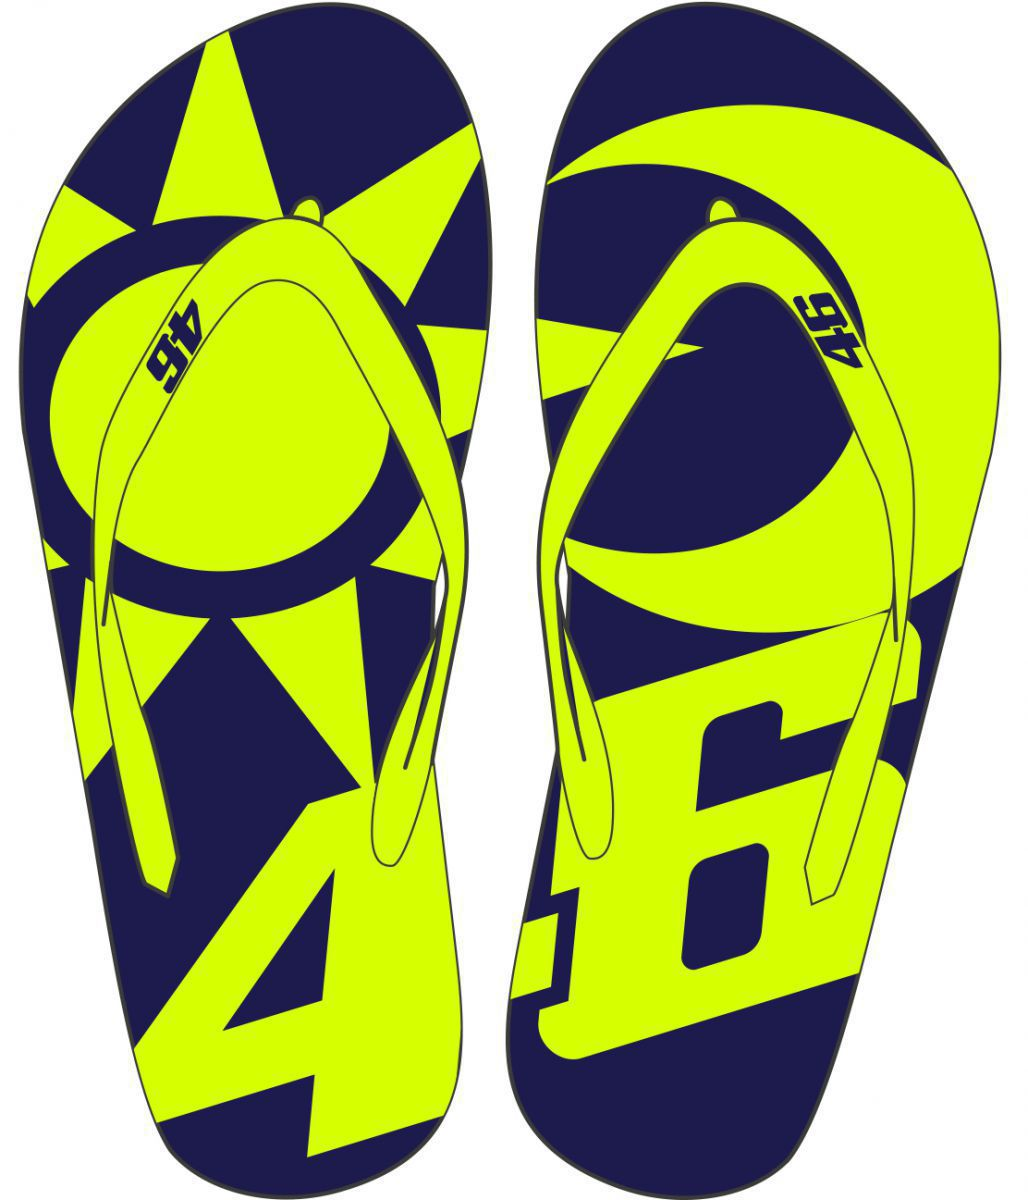 Sandals SUN AND MOON VR46